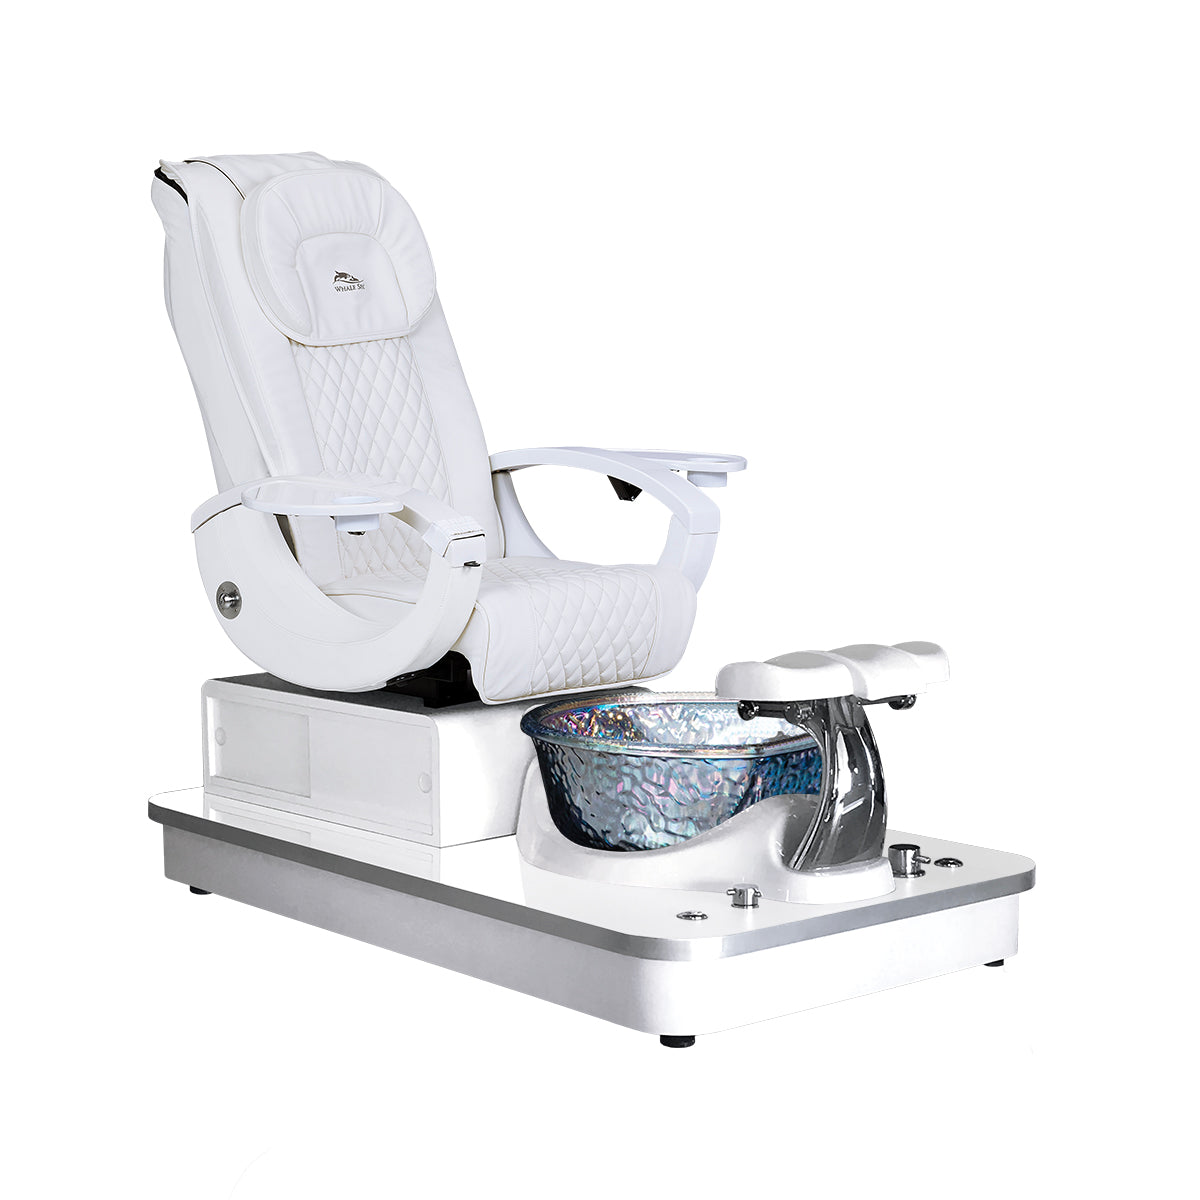 Whale Spa - Felicity Freeform White Edition Pedicure Spa